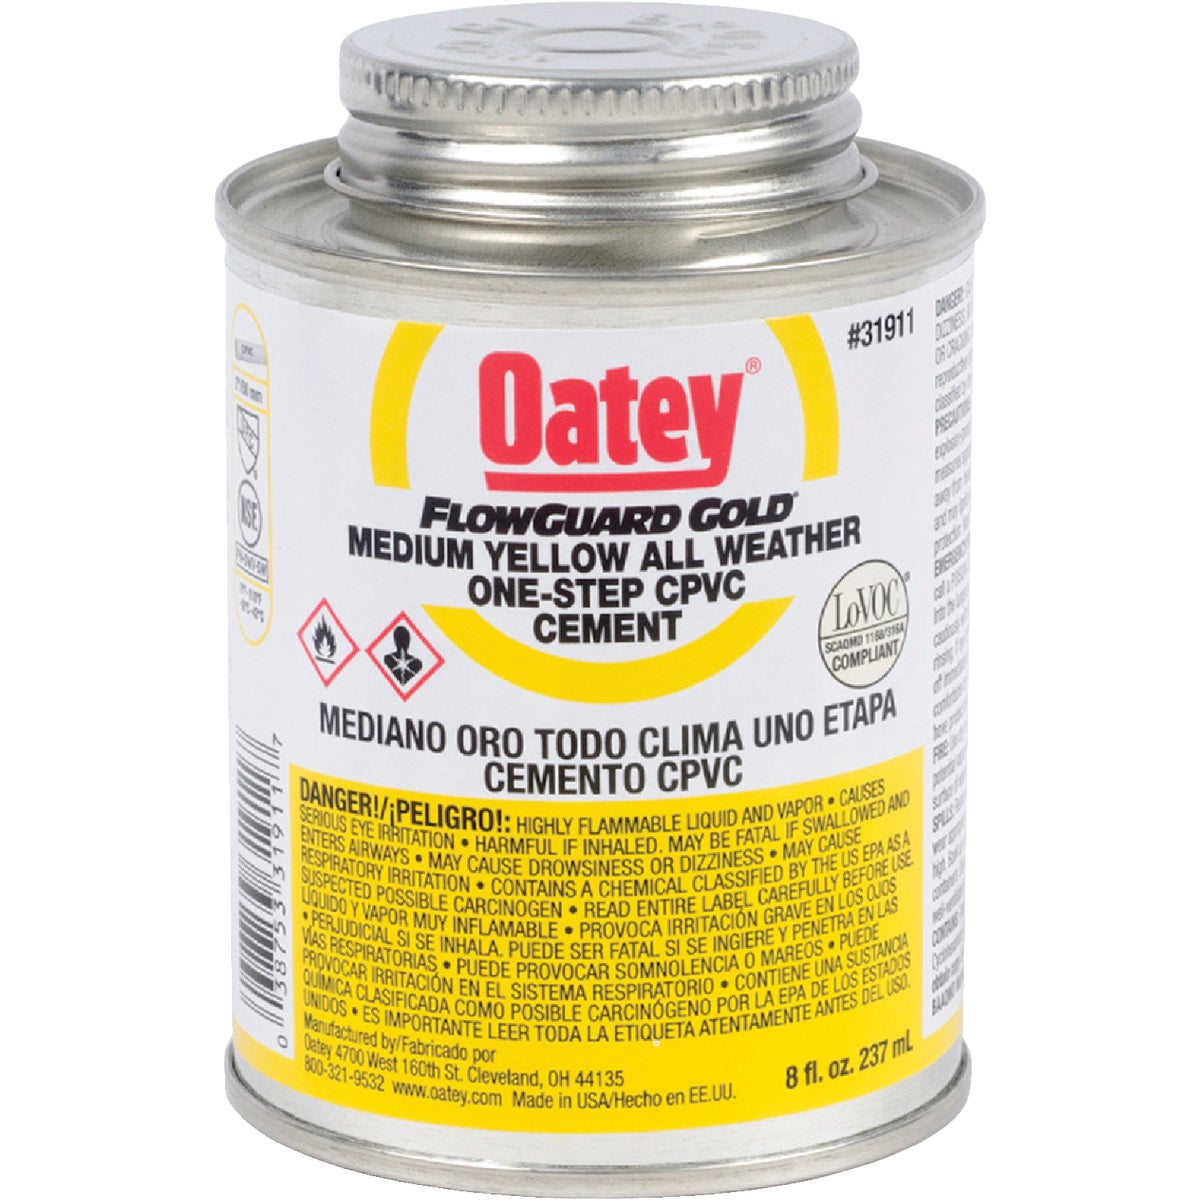 1/2PINT F/G CPVC CEMENT - 31911 by Oatey Scs